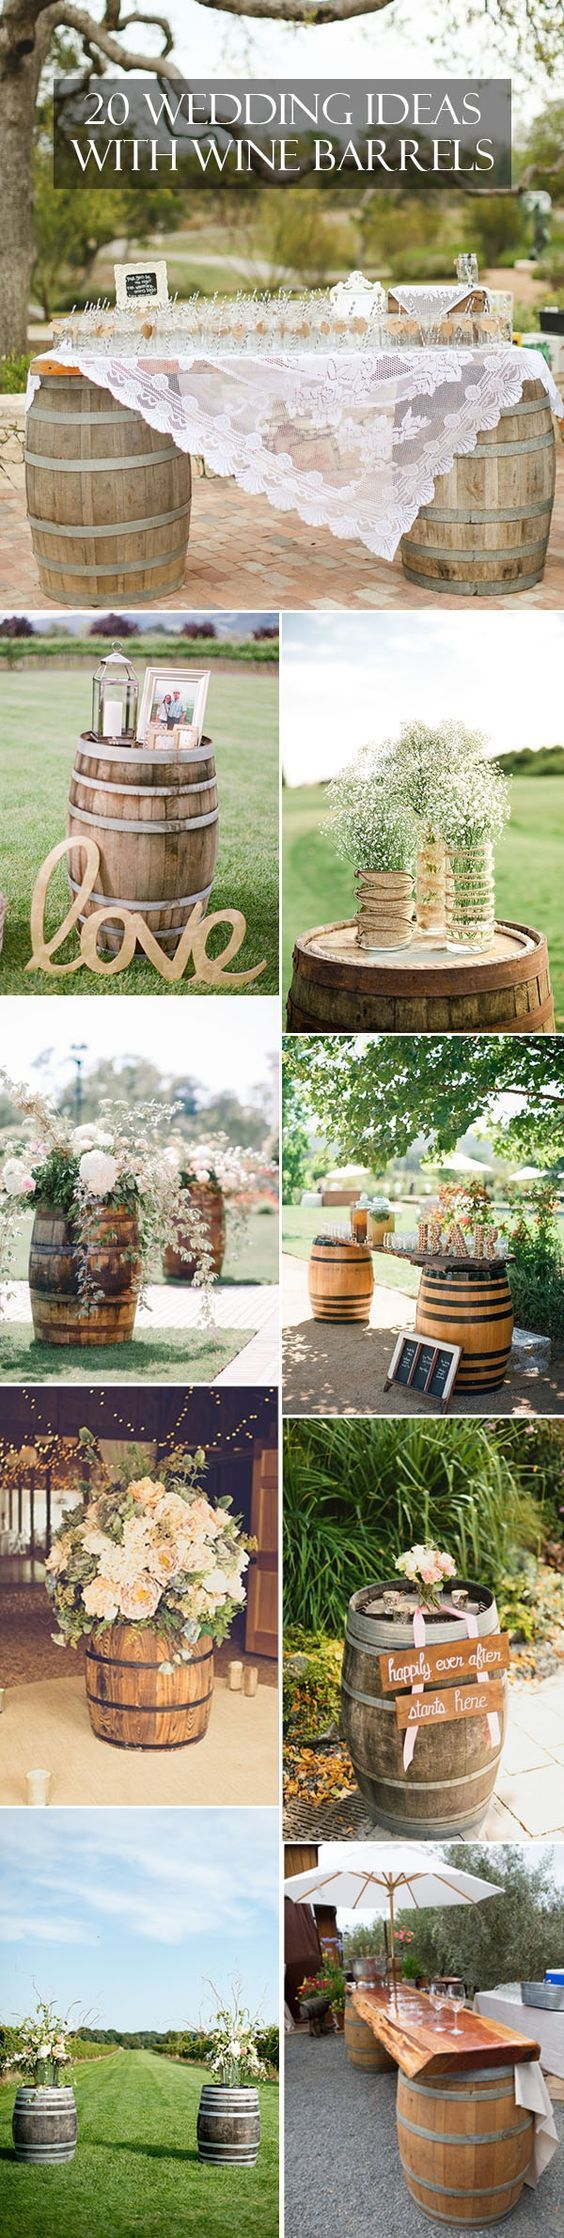 great ways to use wine barrels for country rustic wedding ideas For couples who are not into formal, modern affairs, country rustic wedding theme will be a great choice, which offers an opportunity to inject the newlywed's personality into the country themed ceremony and reception… Refer tohttp://www.elegantweddinginvites.com/country-wedding-ideas-20-ways-to-use-wine-barrels/